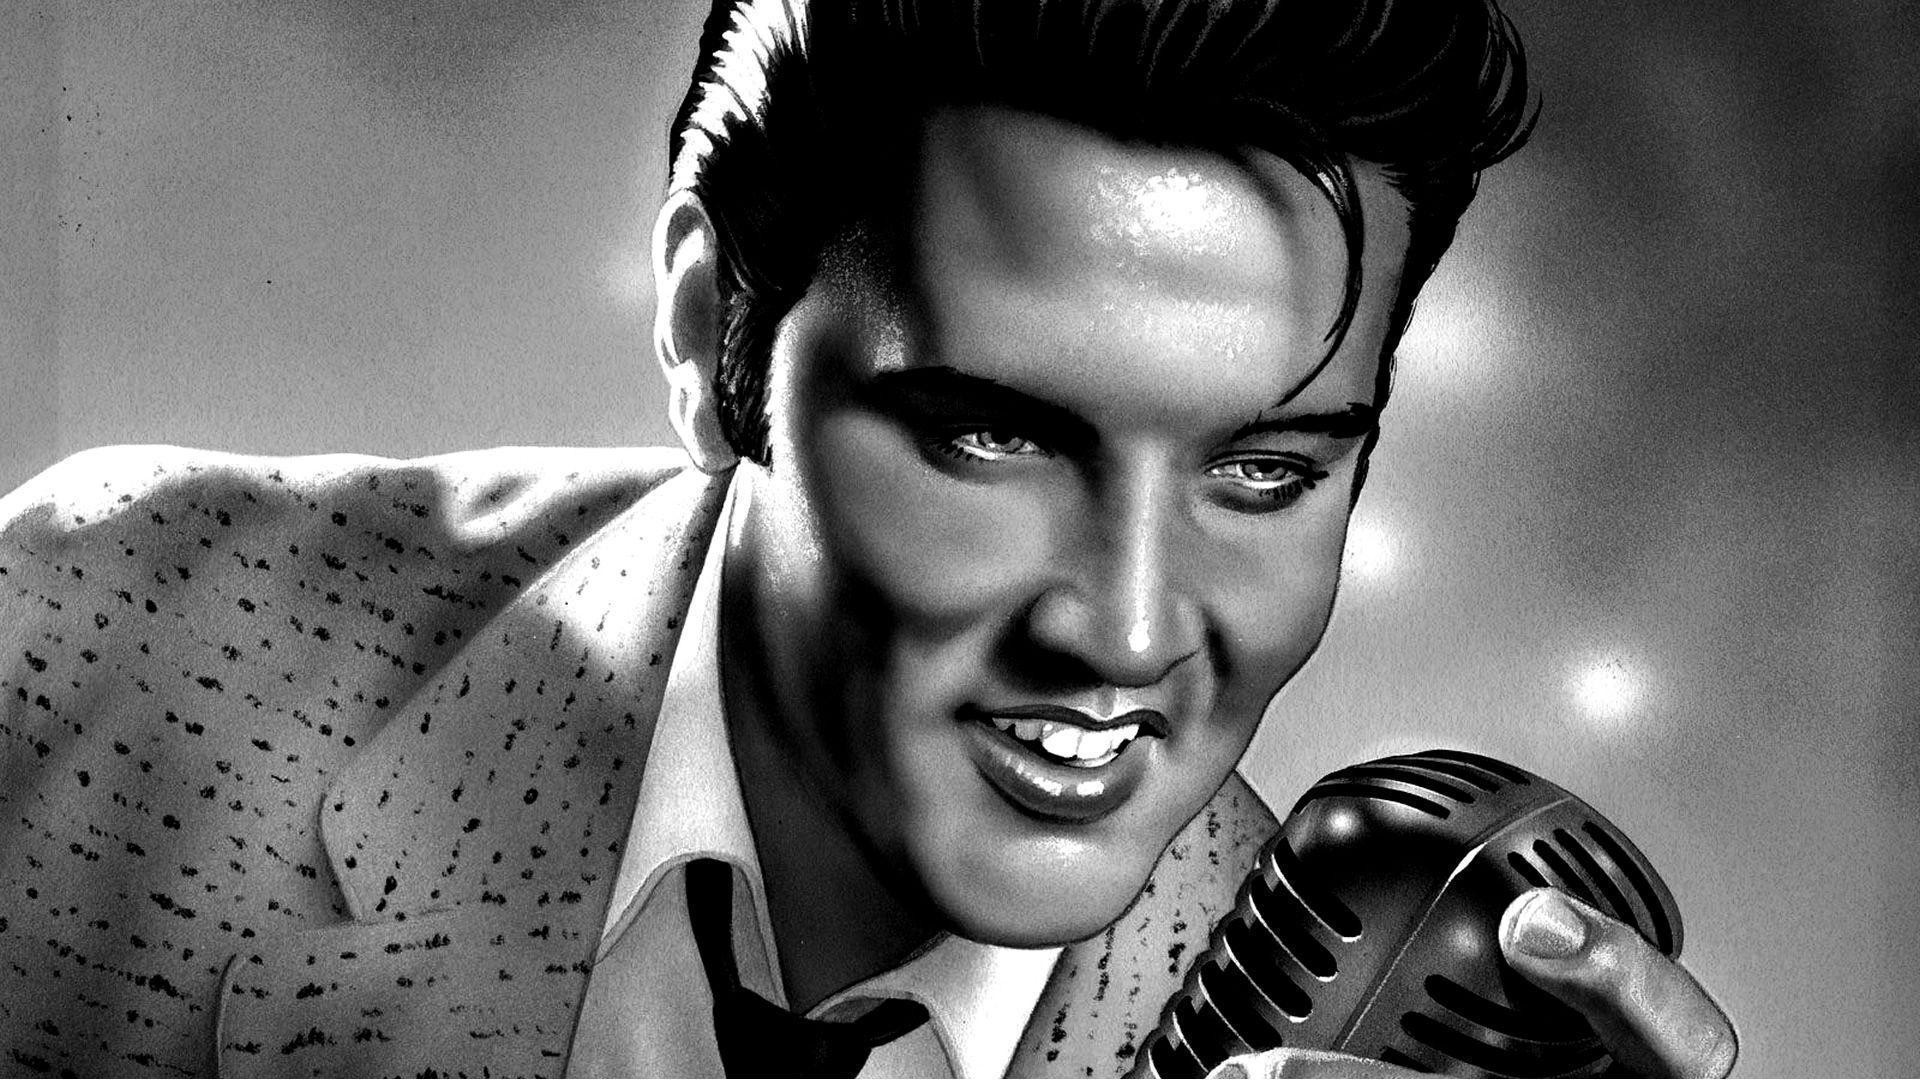 1920x1080 Elvis Presley Wallpapers High Resolution and Quality Download